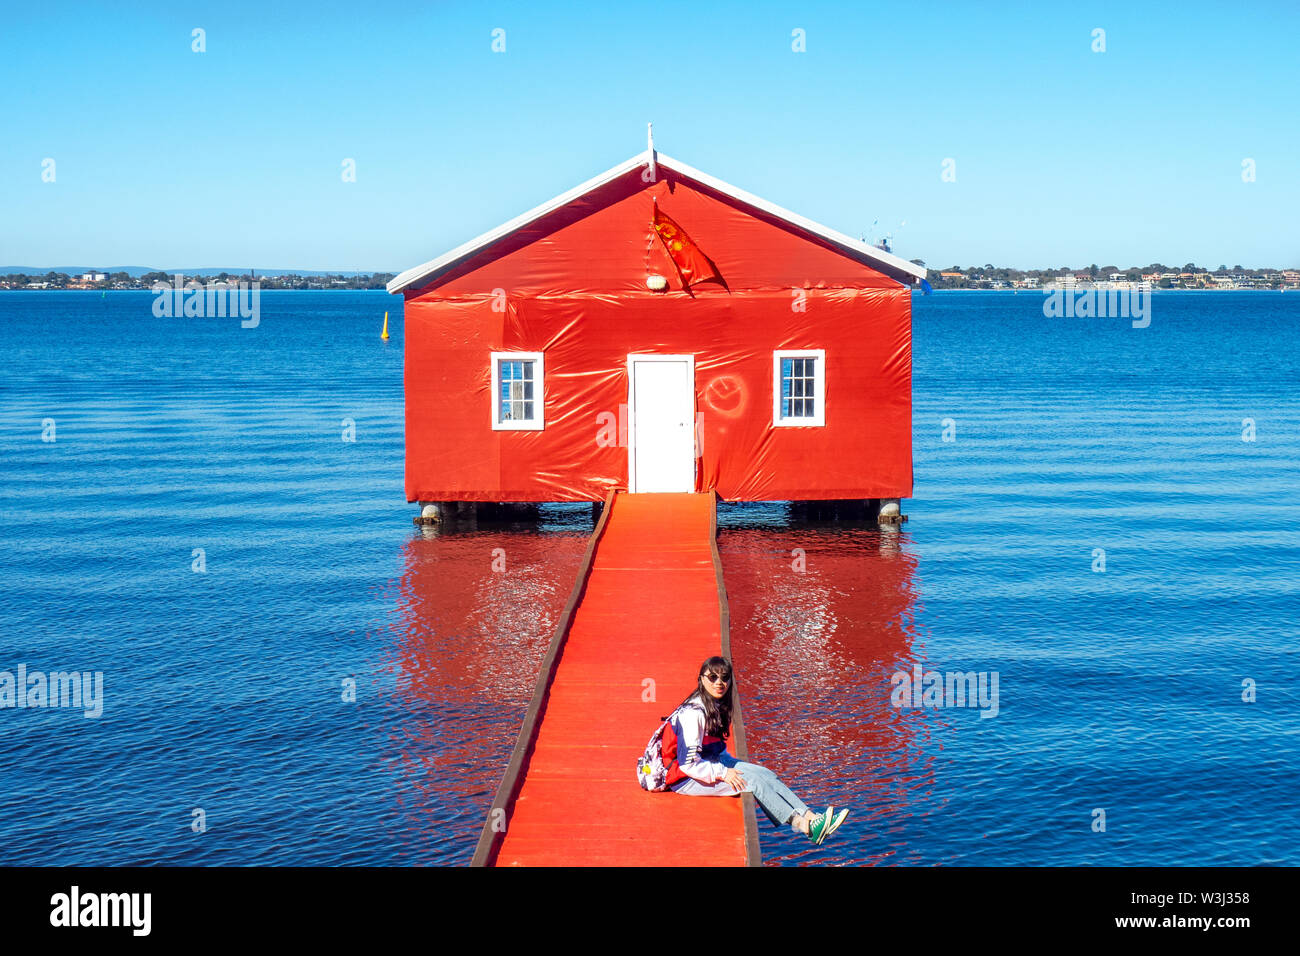 The iconic Crawley Edge Boatshed on the Swan River wrapped in red to commemorate the visit of Manchester United to Perth Western Australia. Stock Photo